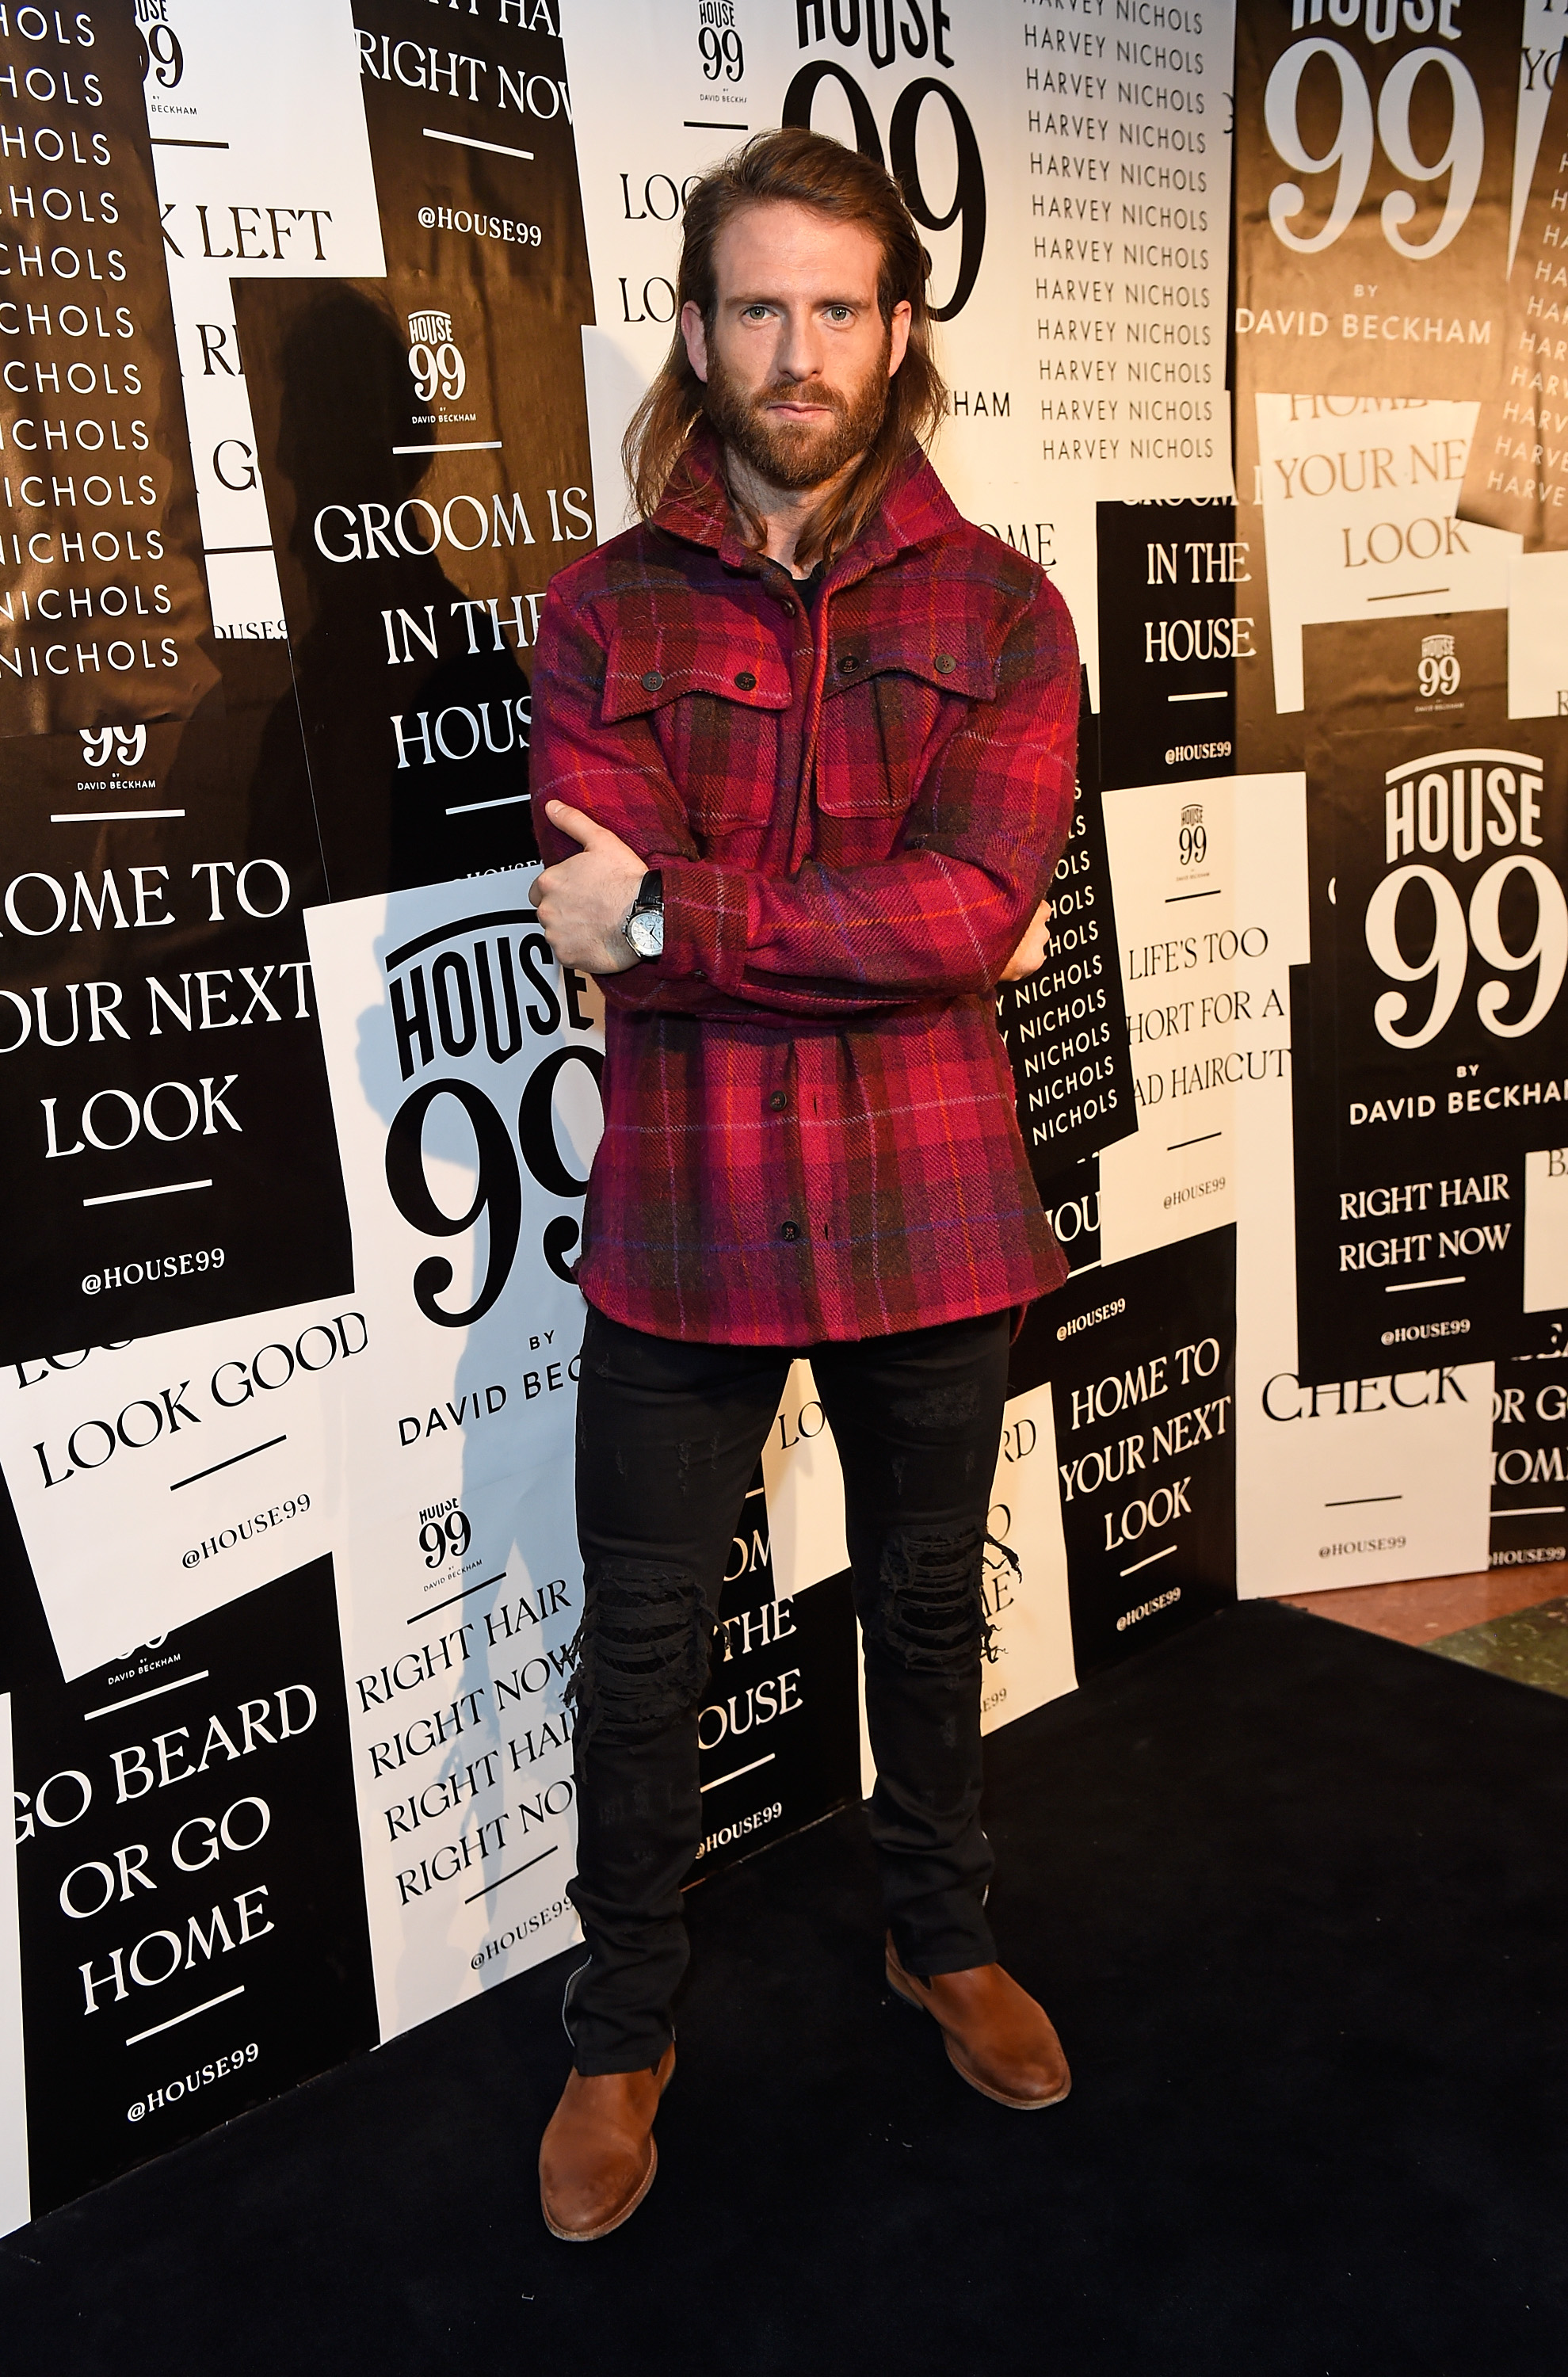 DMB-House 99 brand launch at Harvey Nichols13.JPG